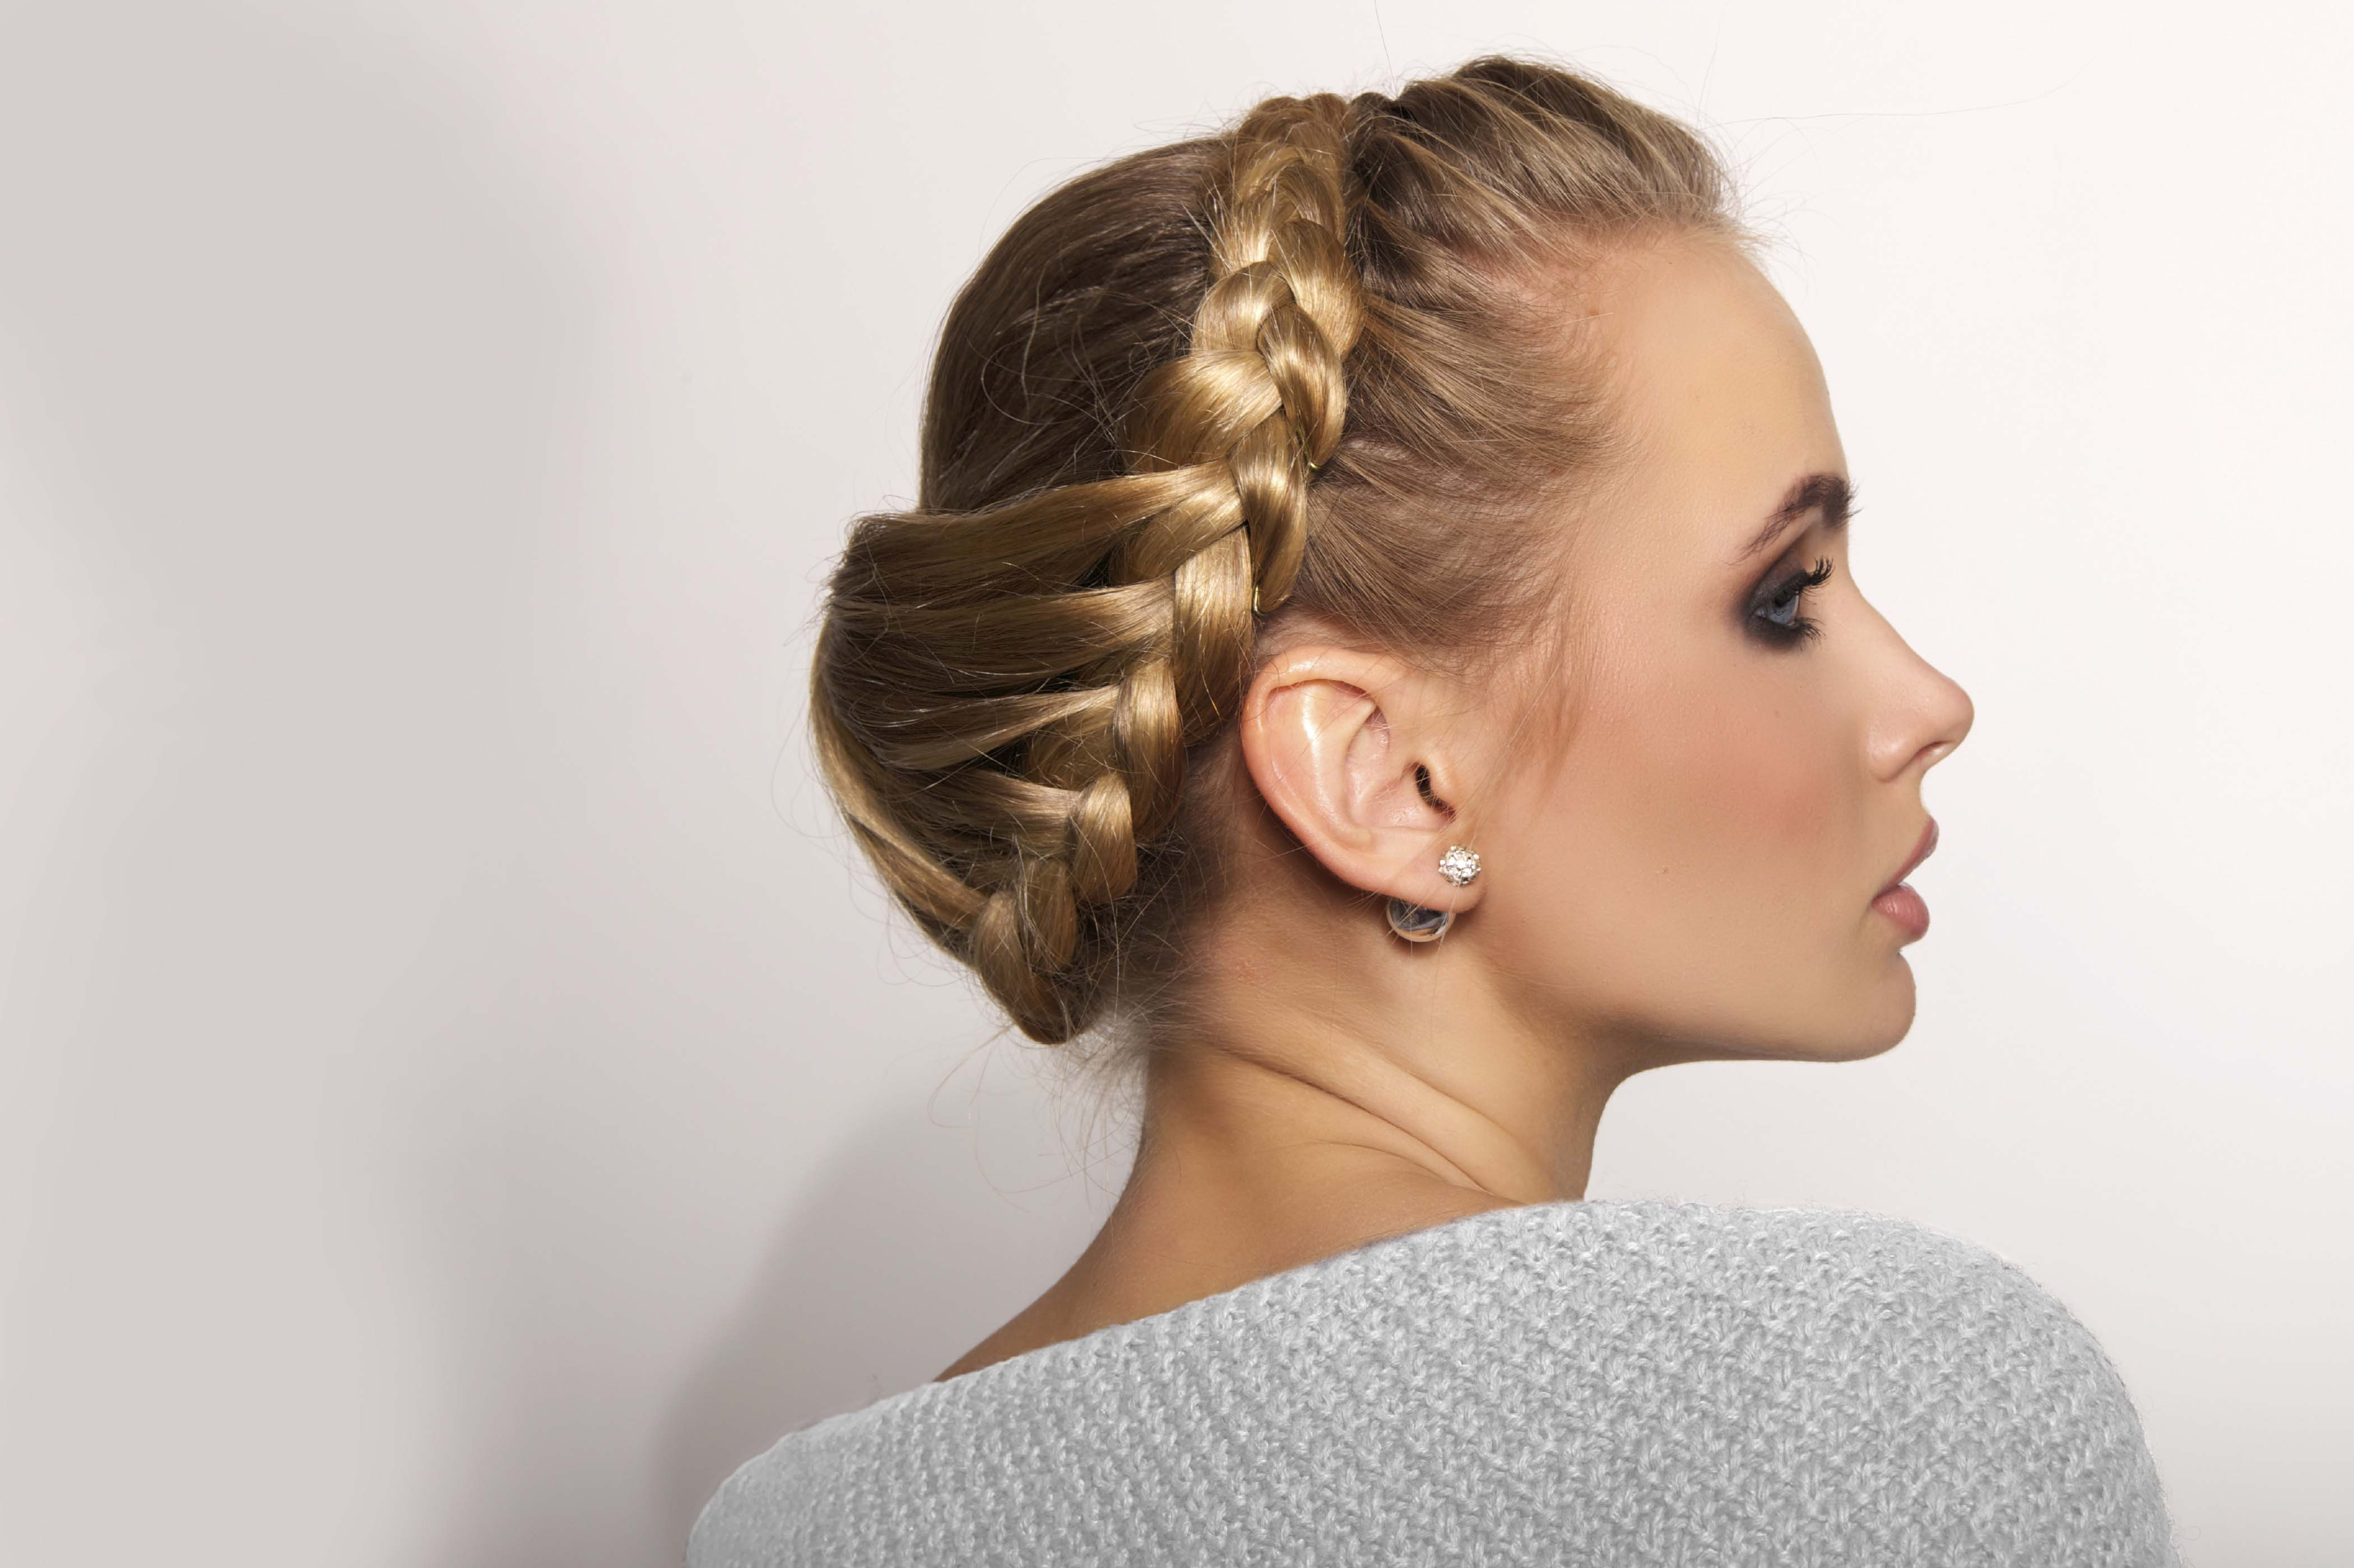 Formal Updo Hairstyle Ideas For The Holidays